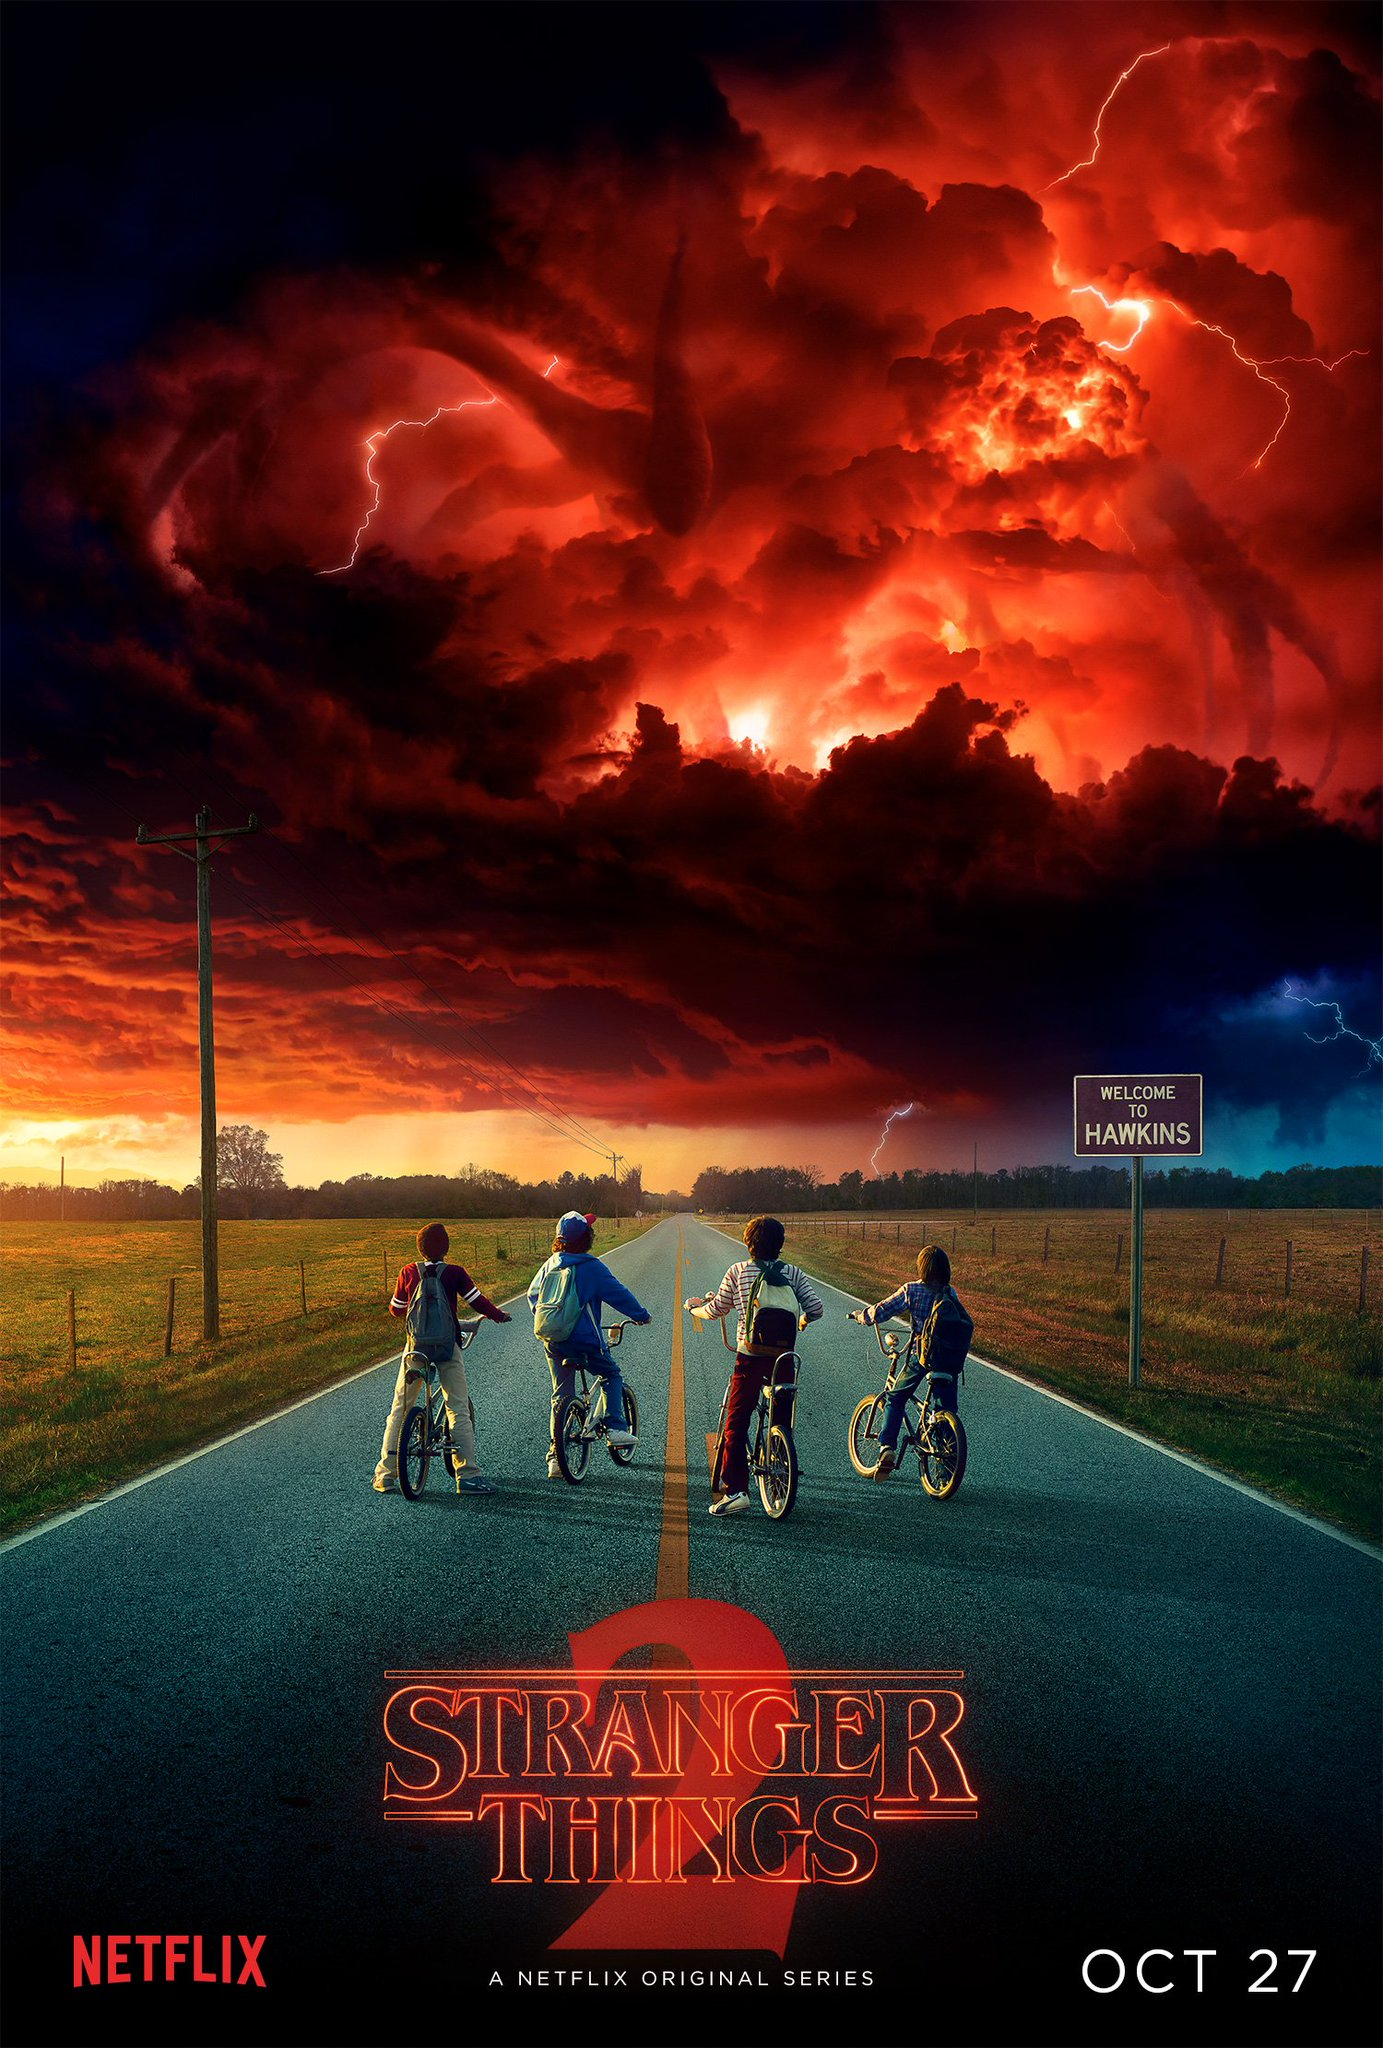 Some doors can't be closed. @Stranger_Things season 2. October 27. https://t.co/8Ewfyy4lcA